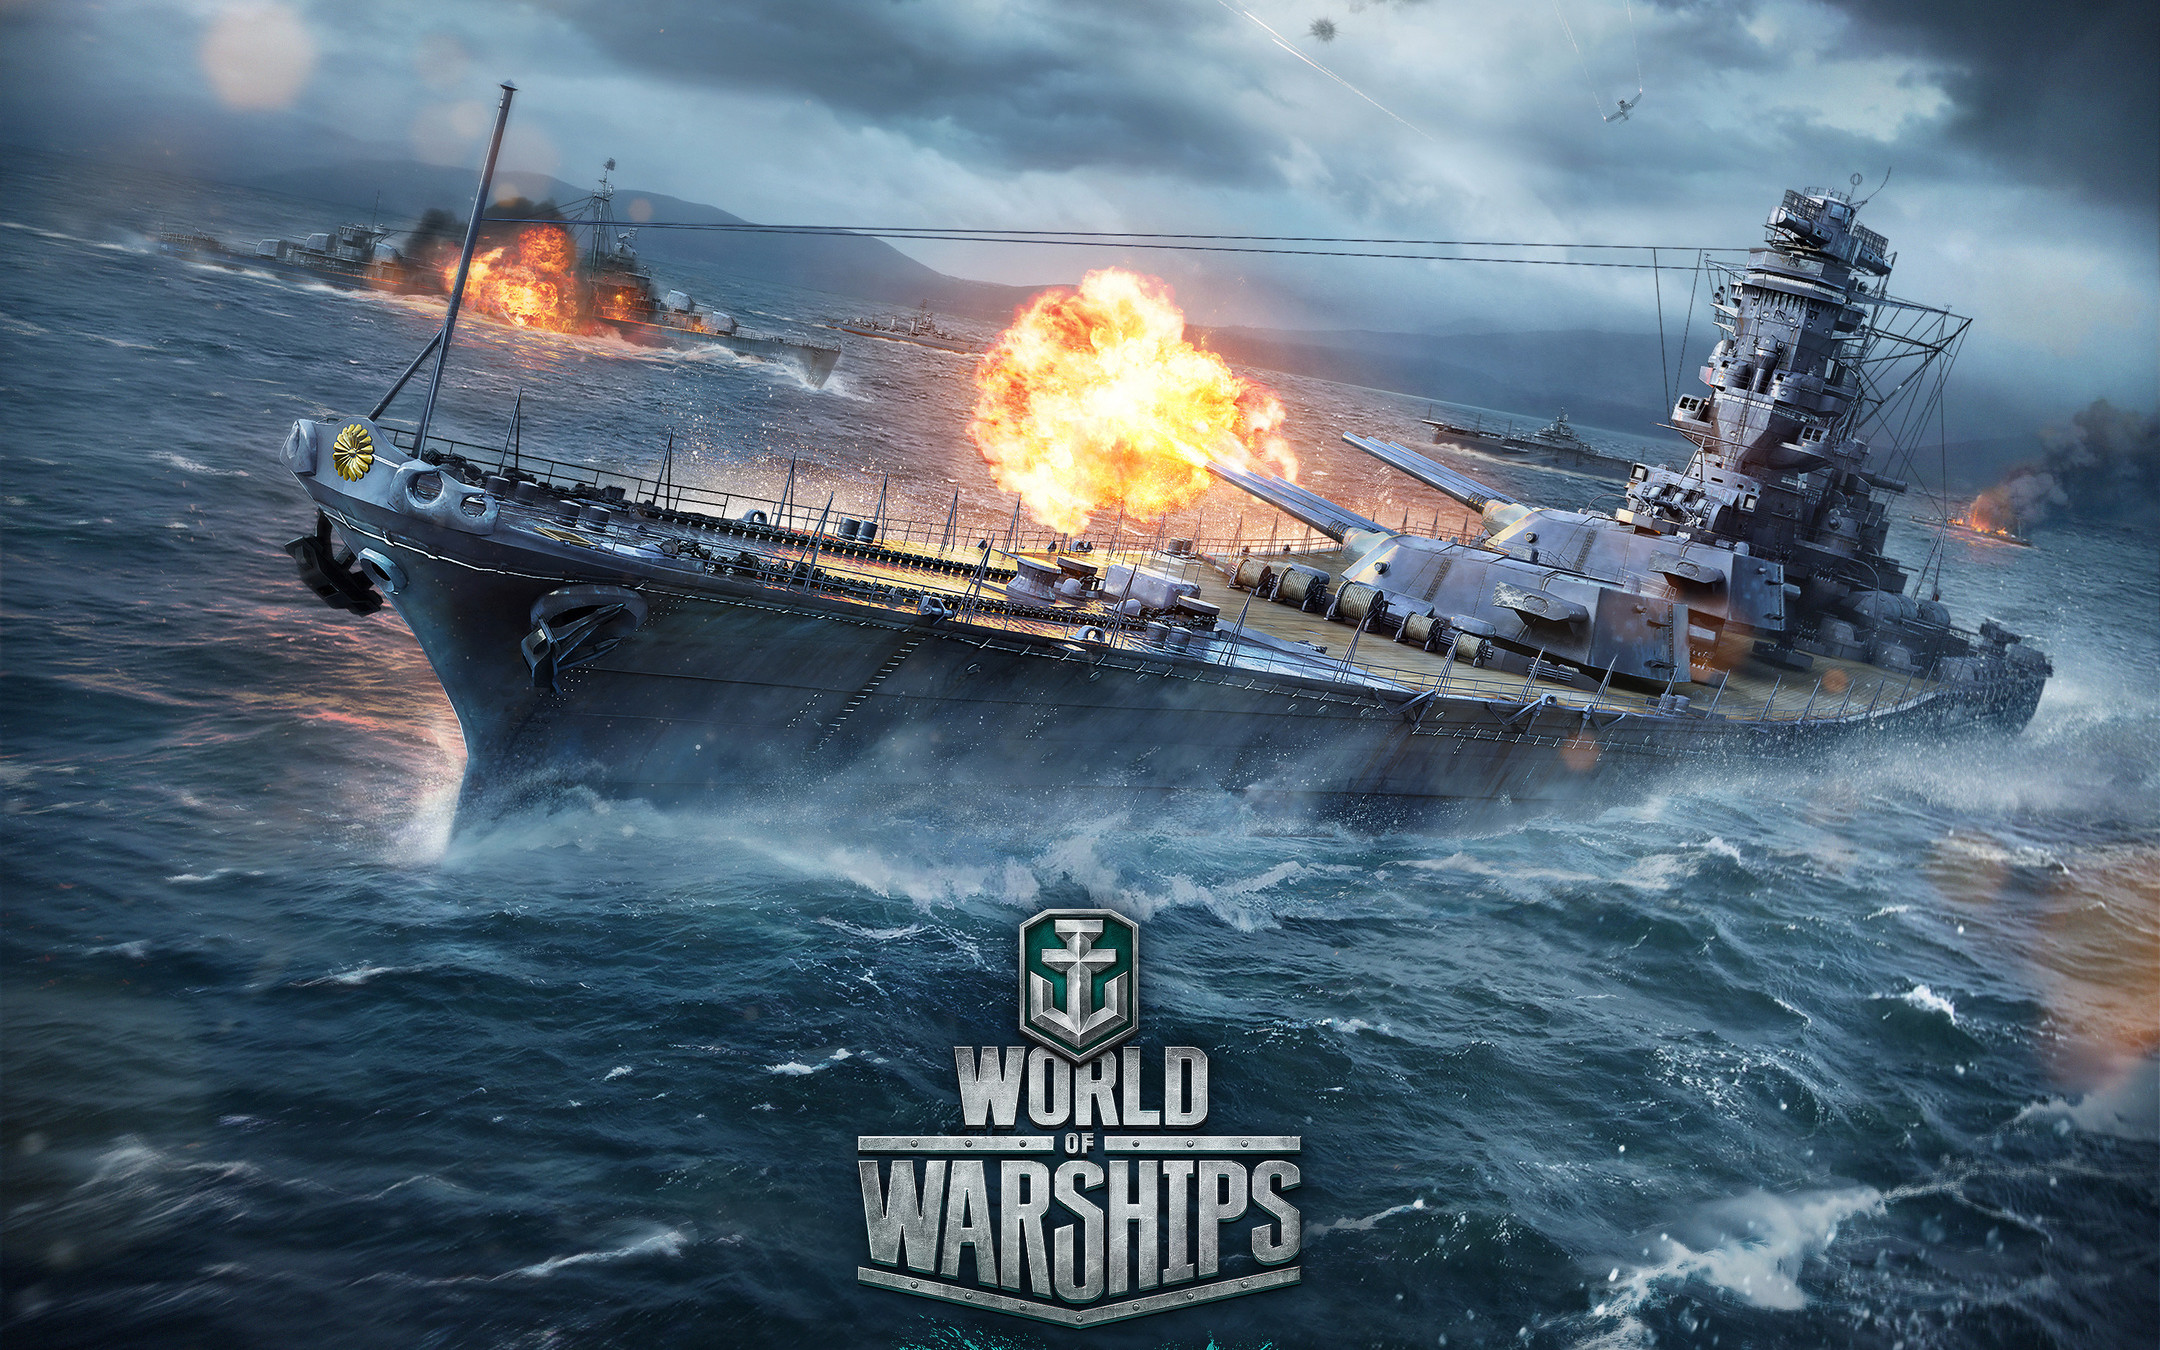 World Of Warships Wallpaper 1920x1080 83 Images